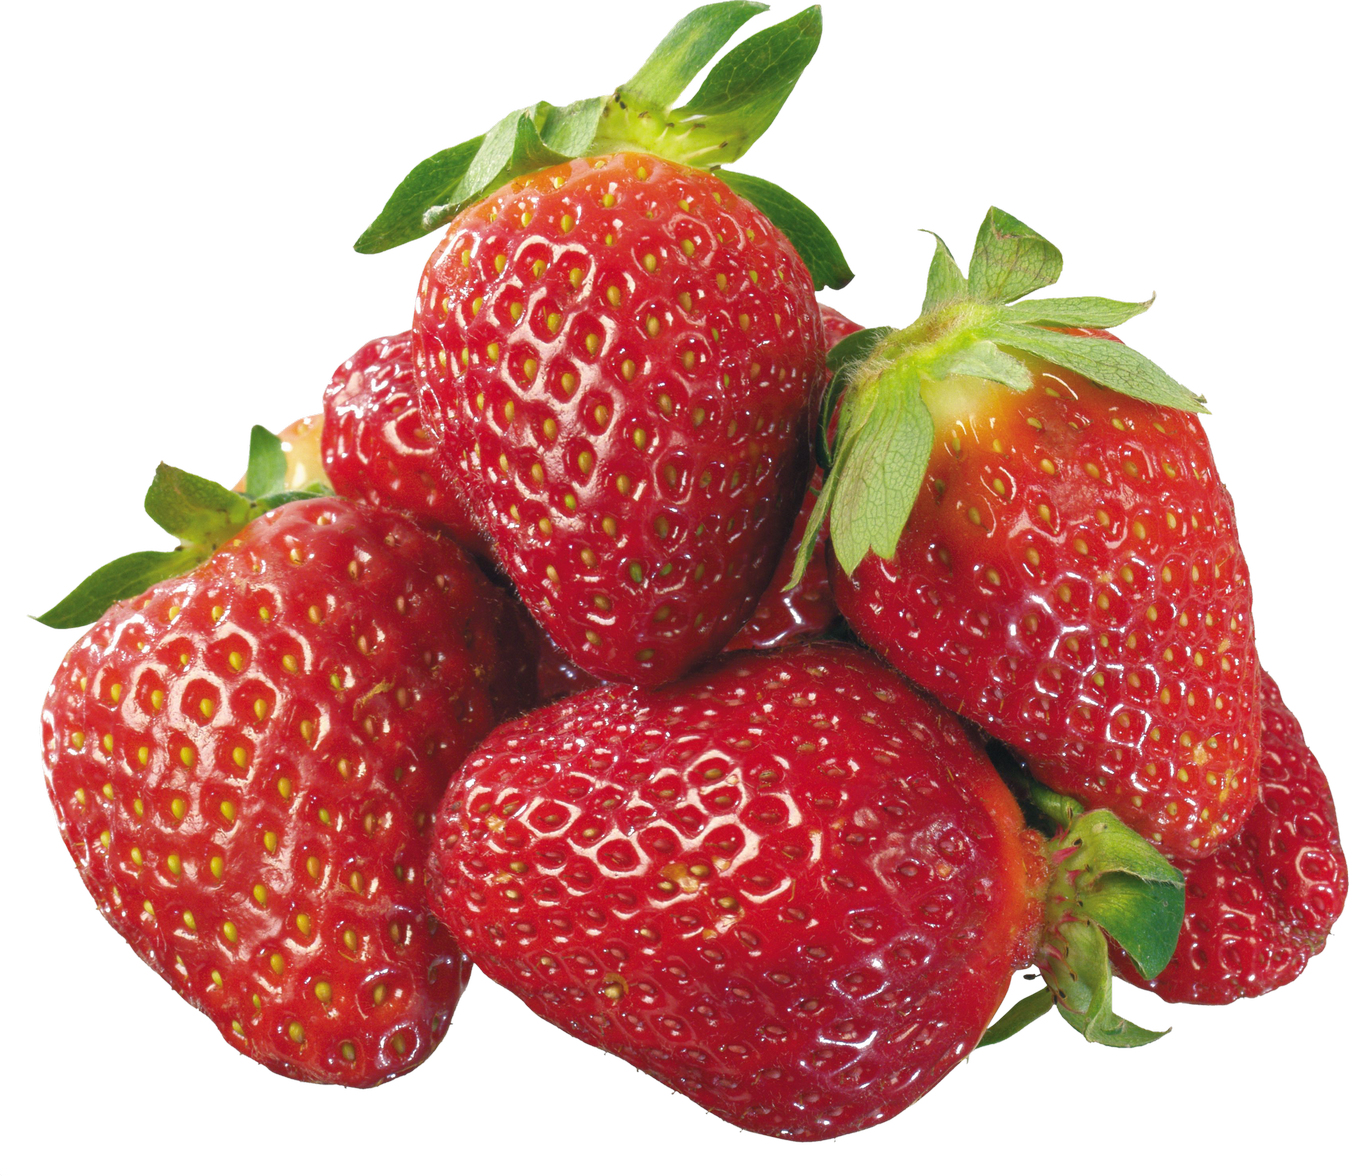 Strawberries clipart bunch. Strawberry png image purepng